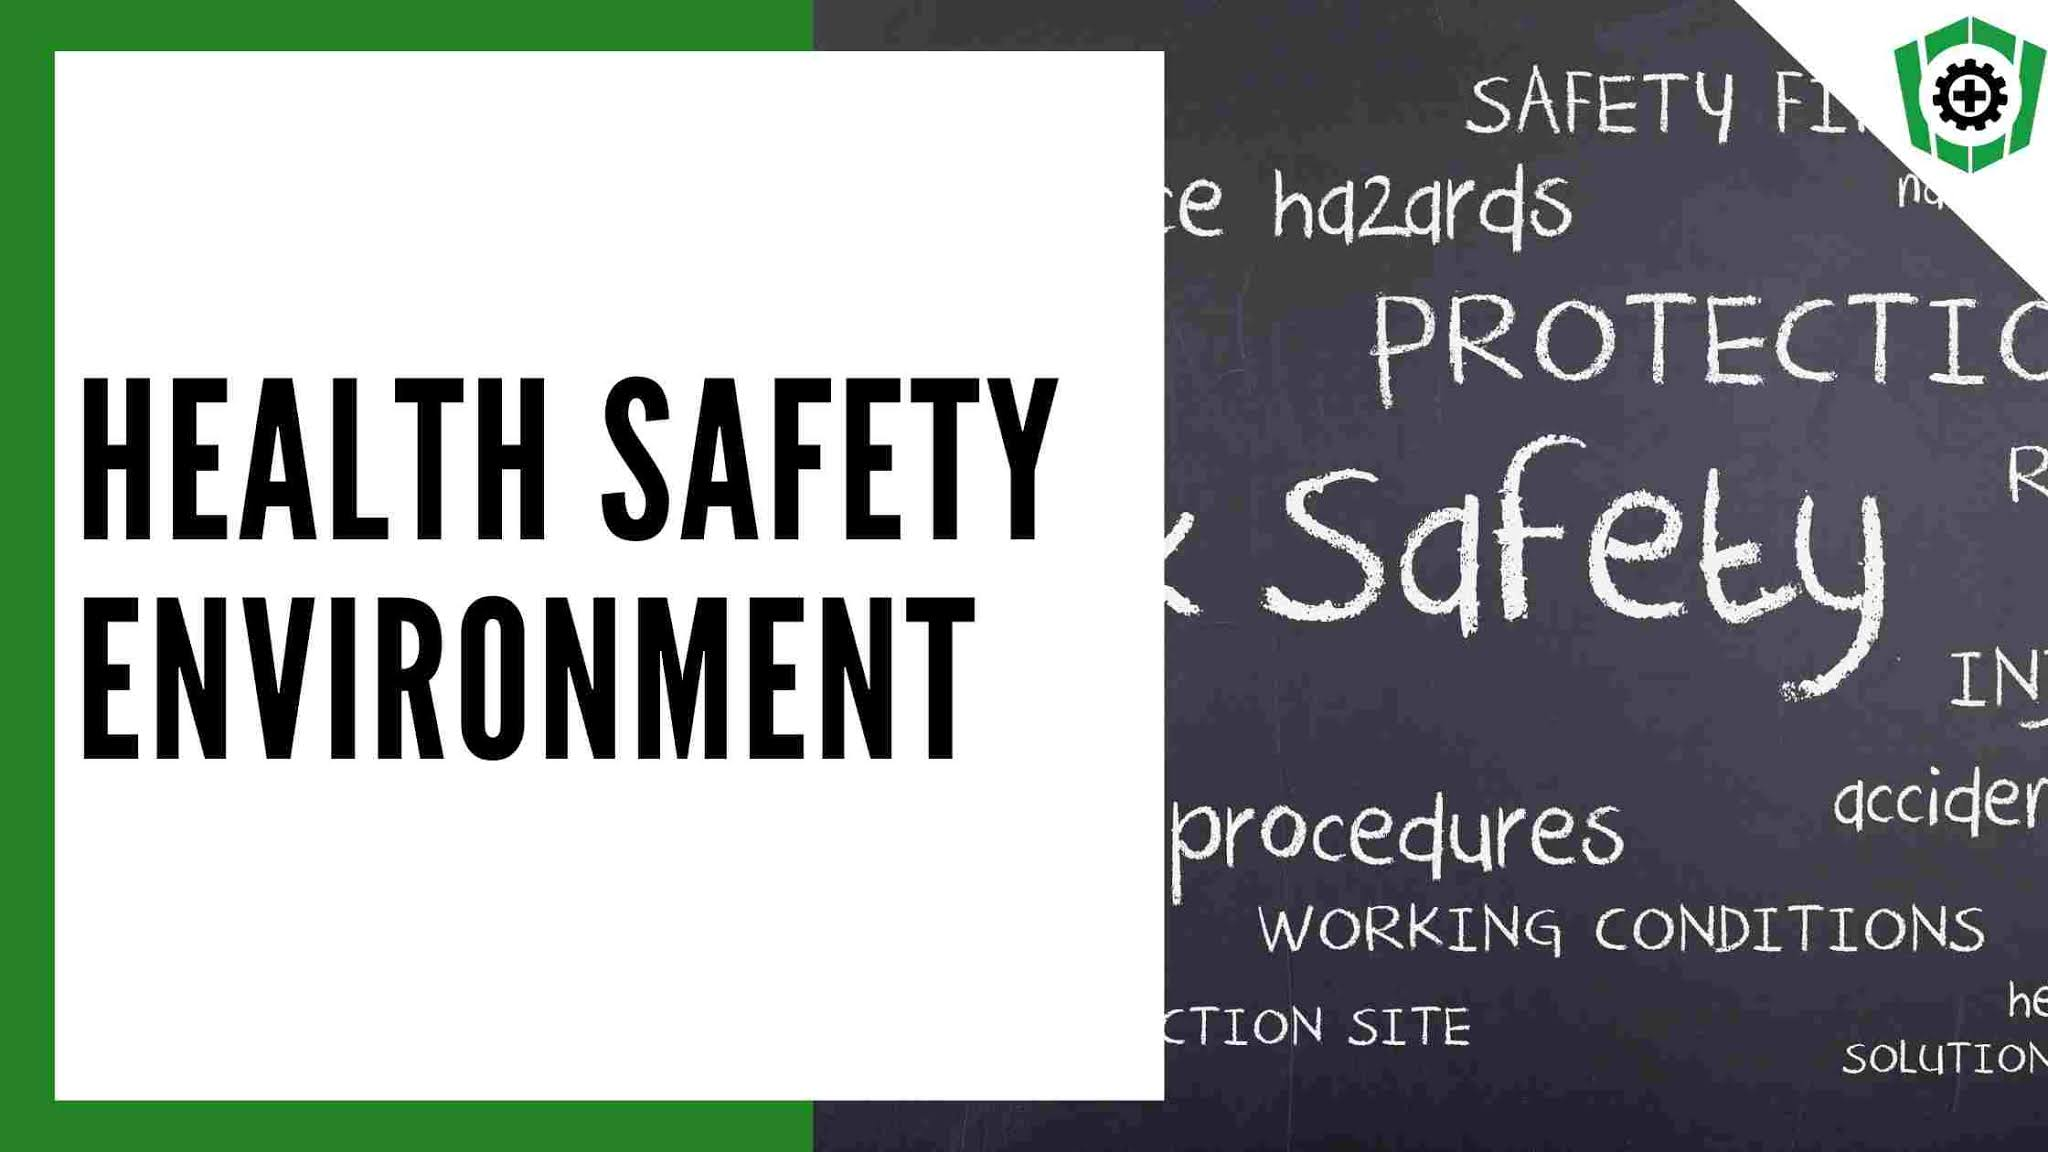 Health safety environment